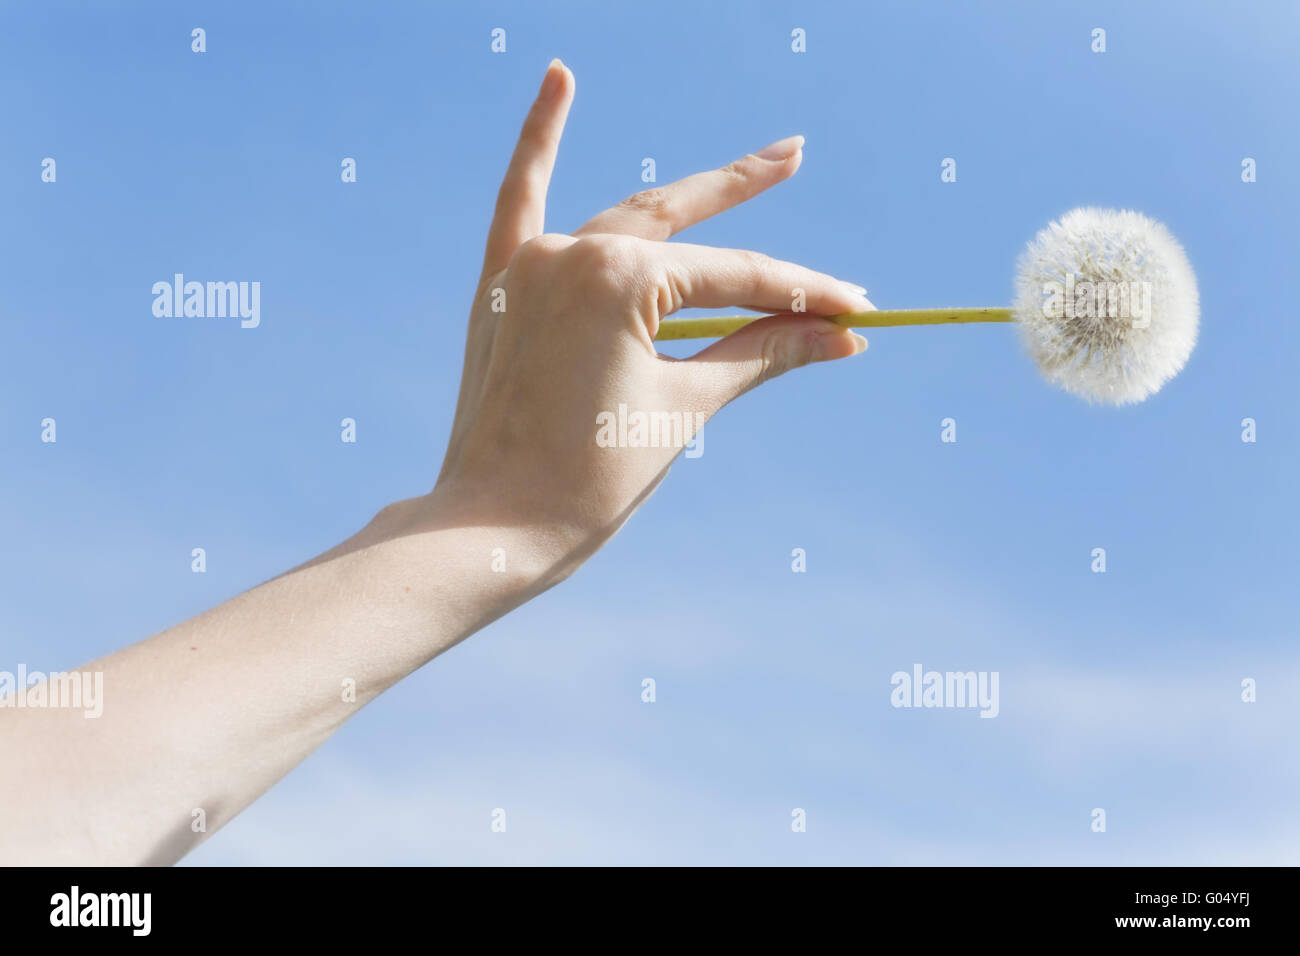 single flower on woman palm on a background of a b - Stock Image